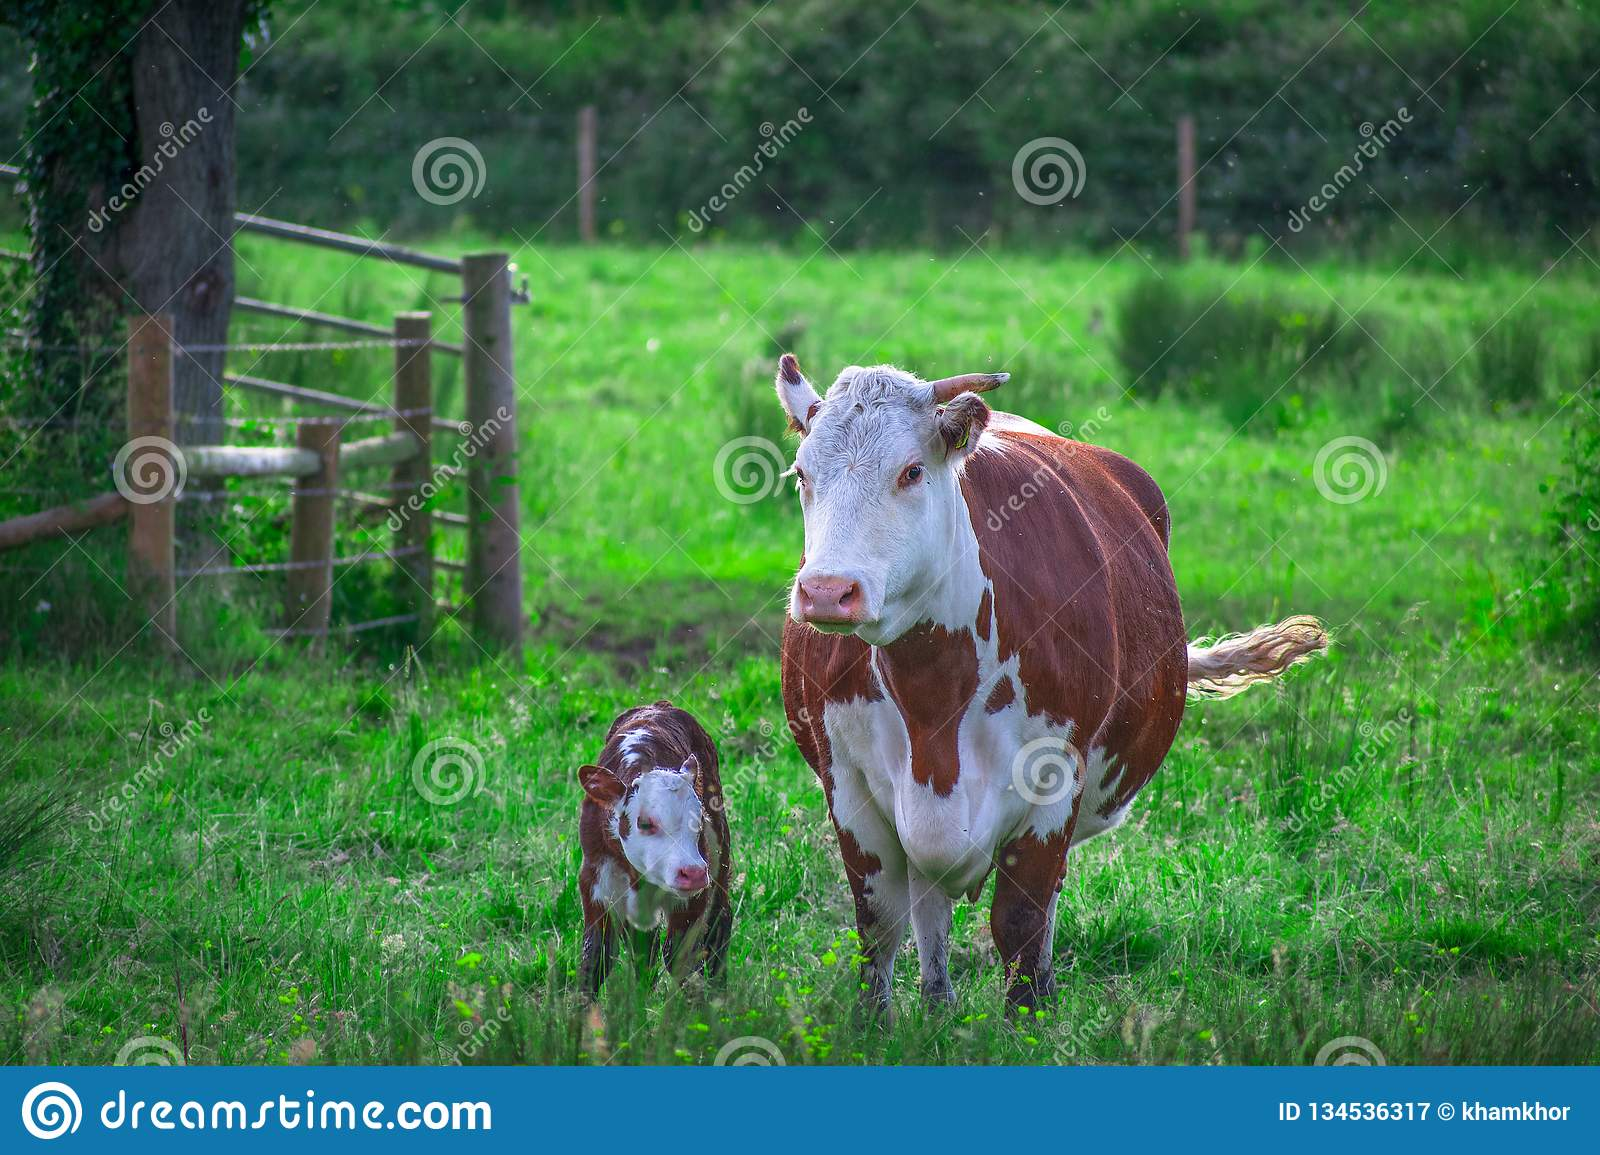 Closeup of very beautiful photo of Baby calf walking with mother cow in a green farm field in springtime royalty free stock photography